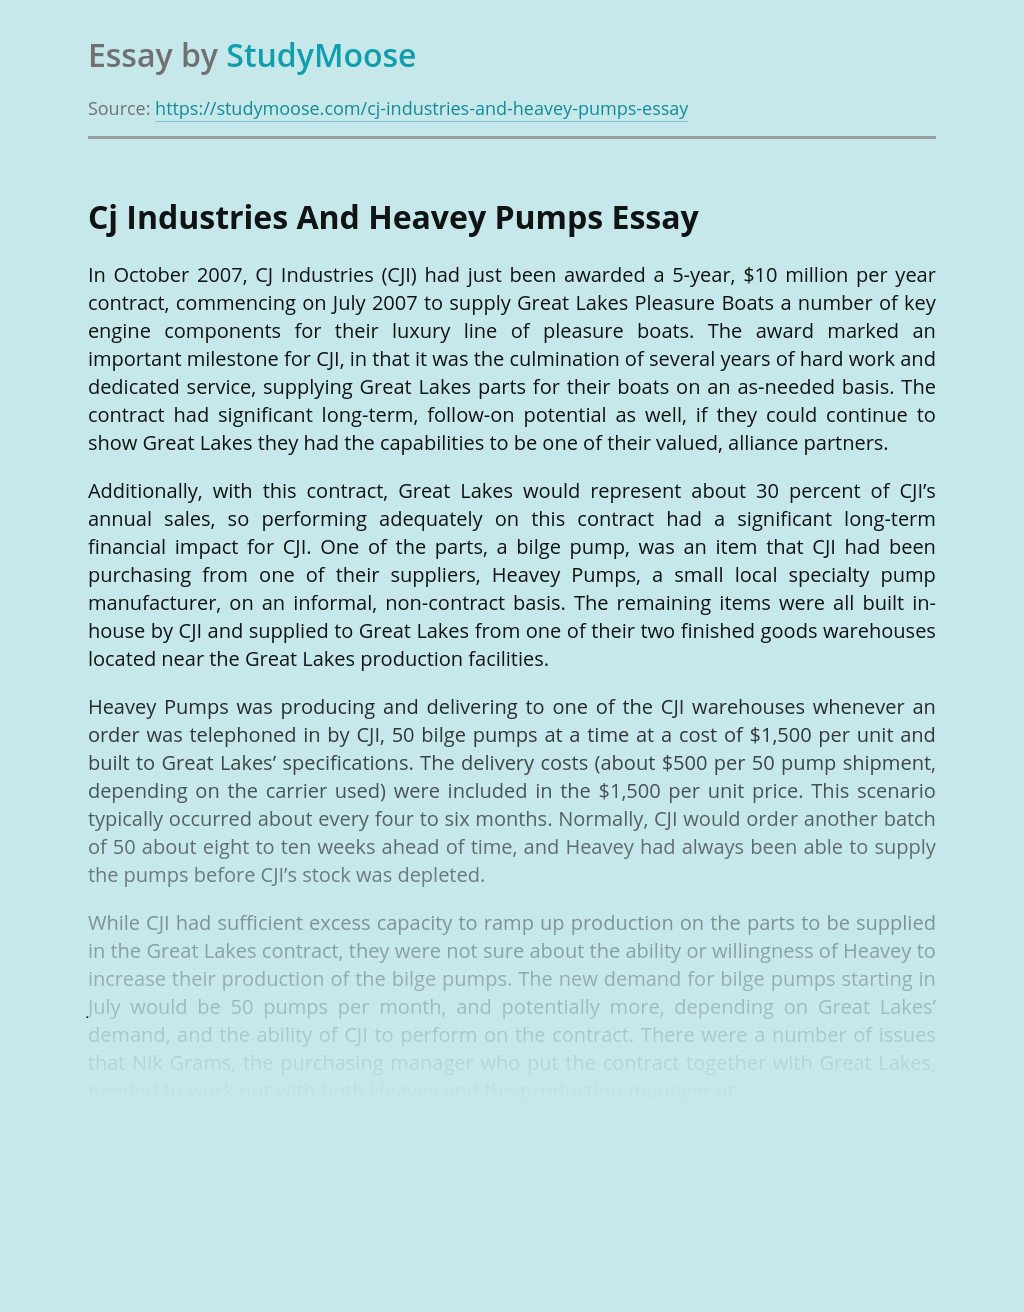 Business Management of Cj Industries And Heavey Pumps